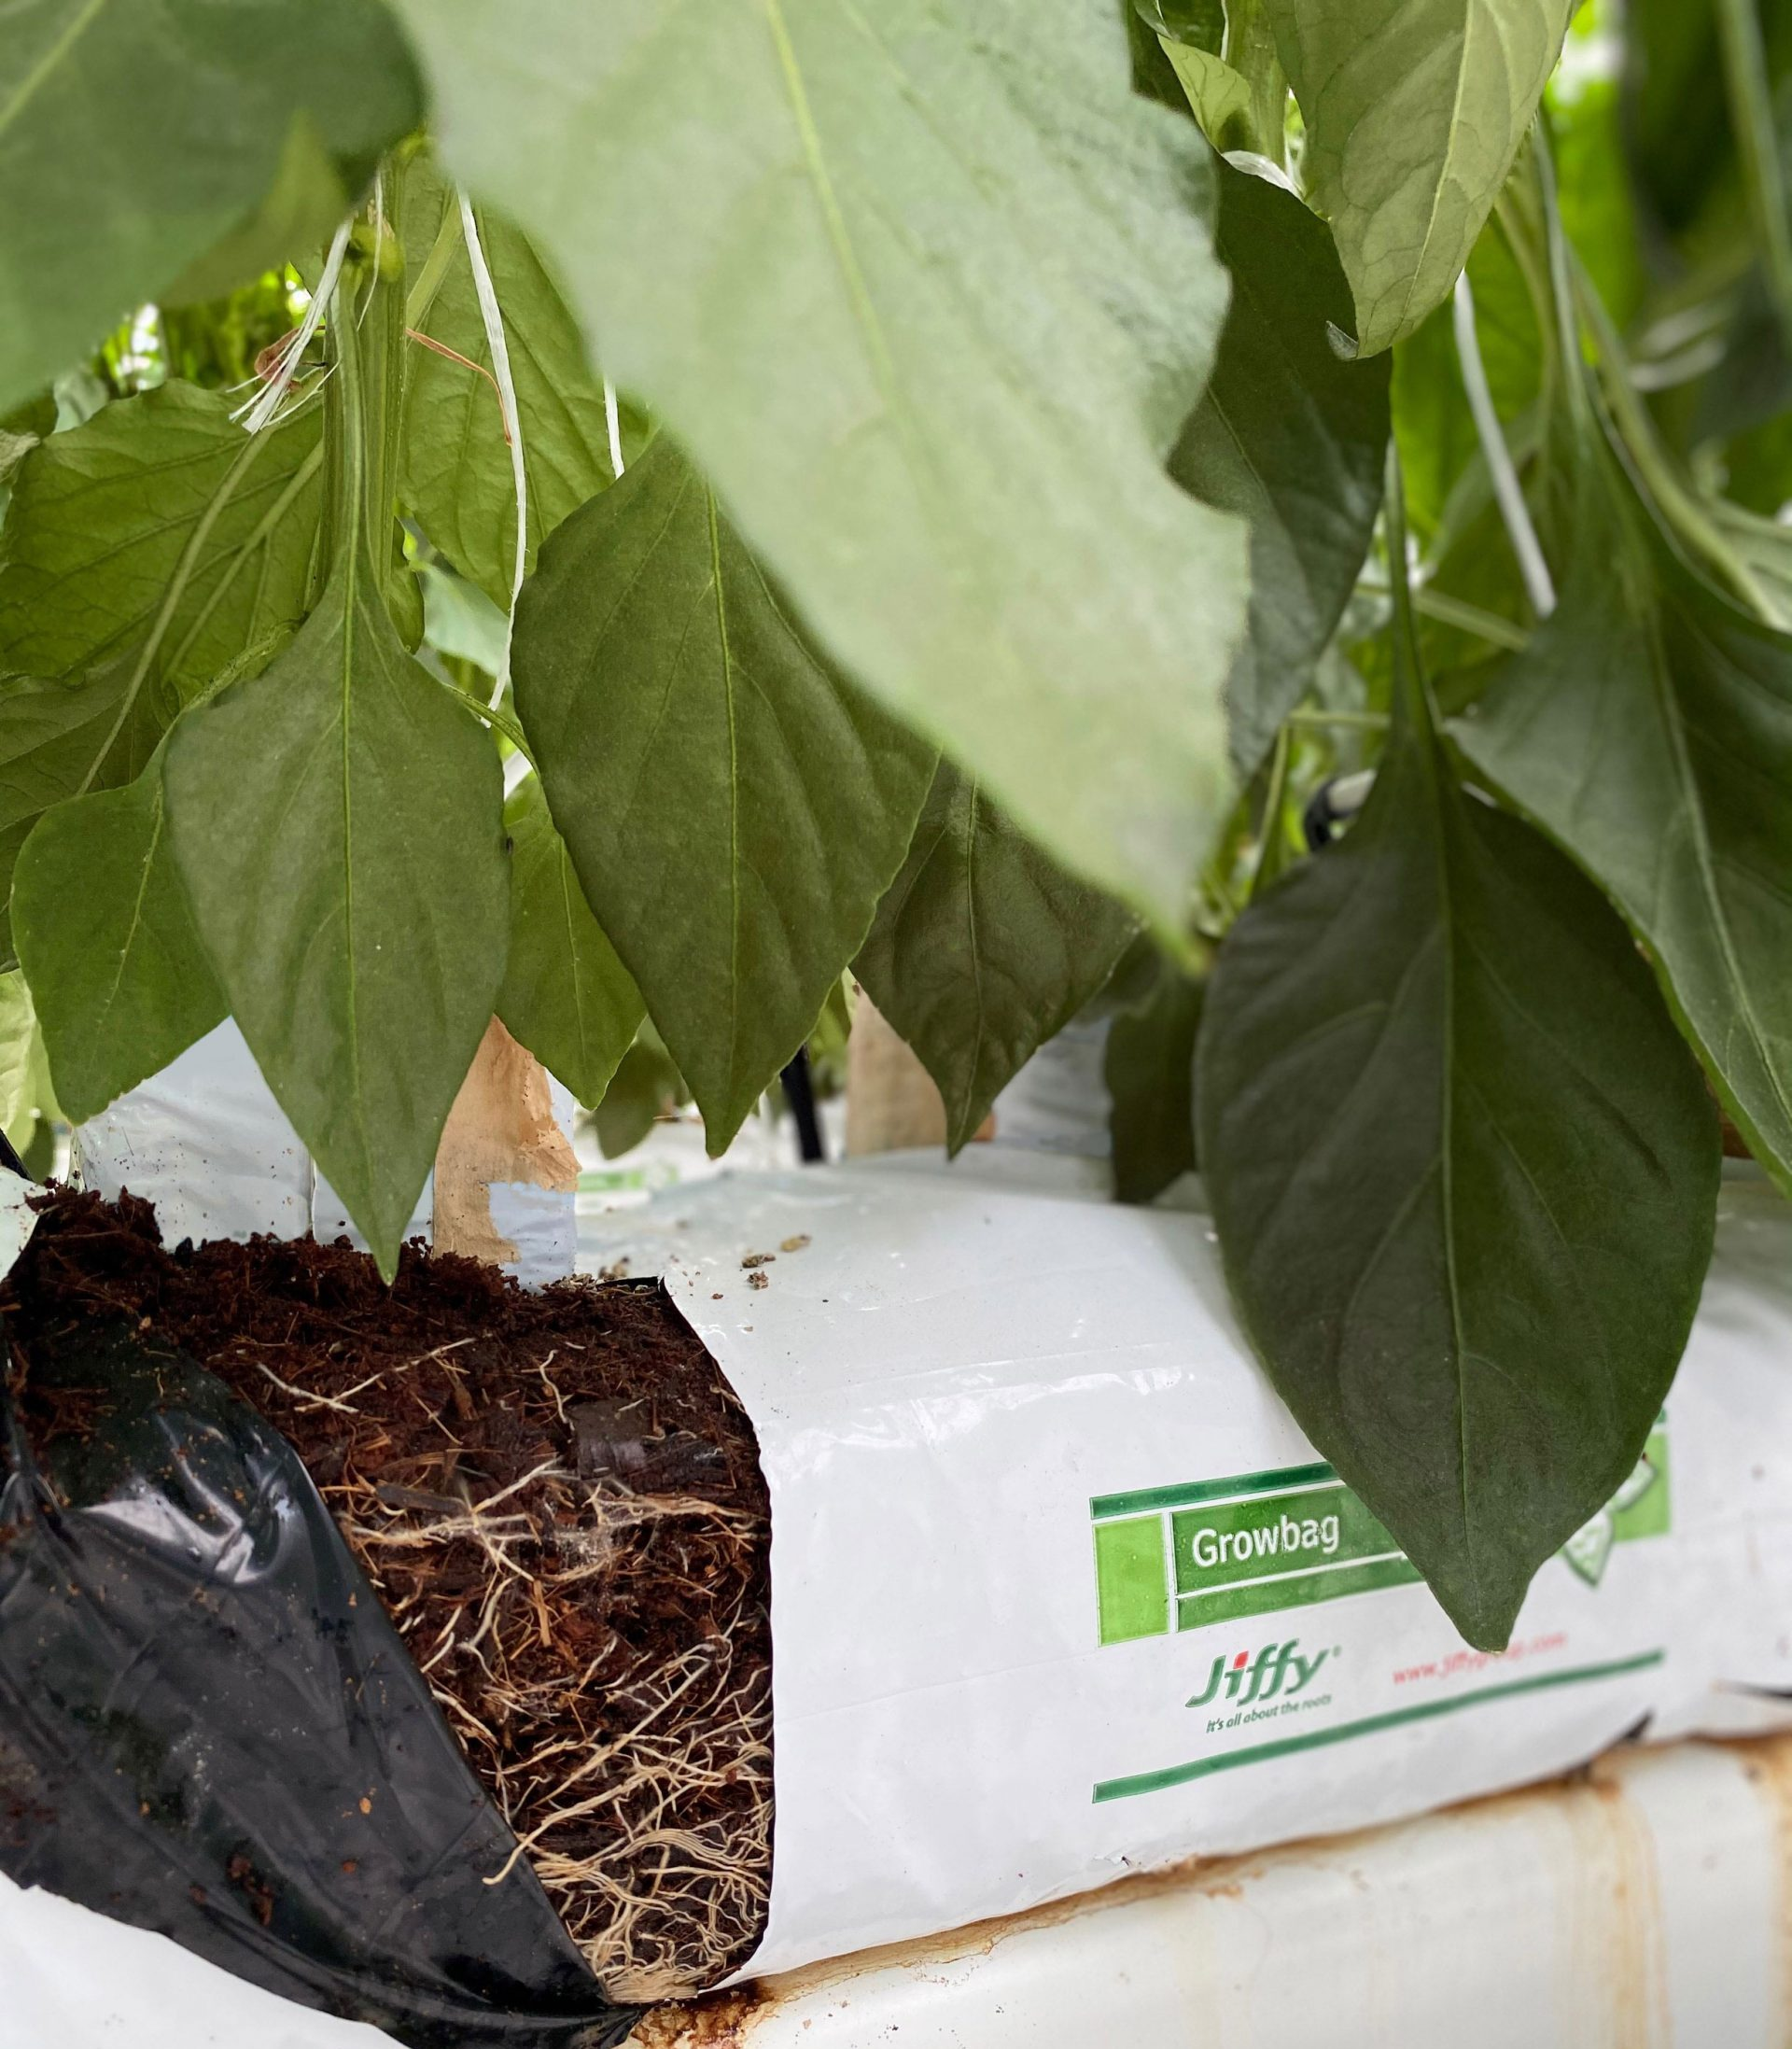 villaserre peppers jiffy growbags